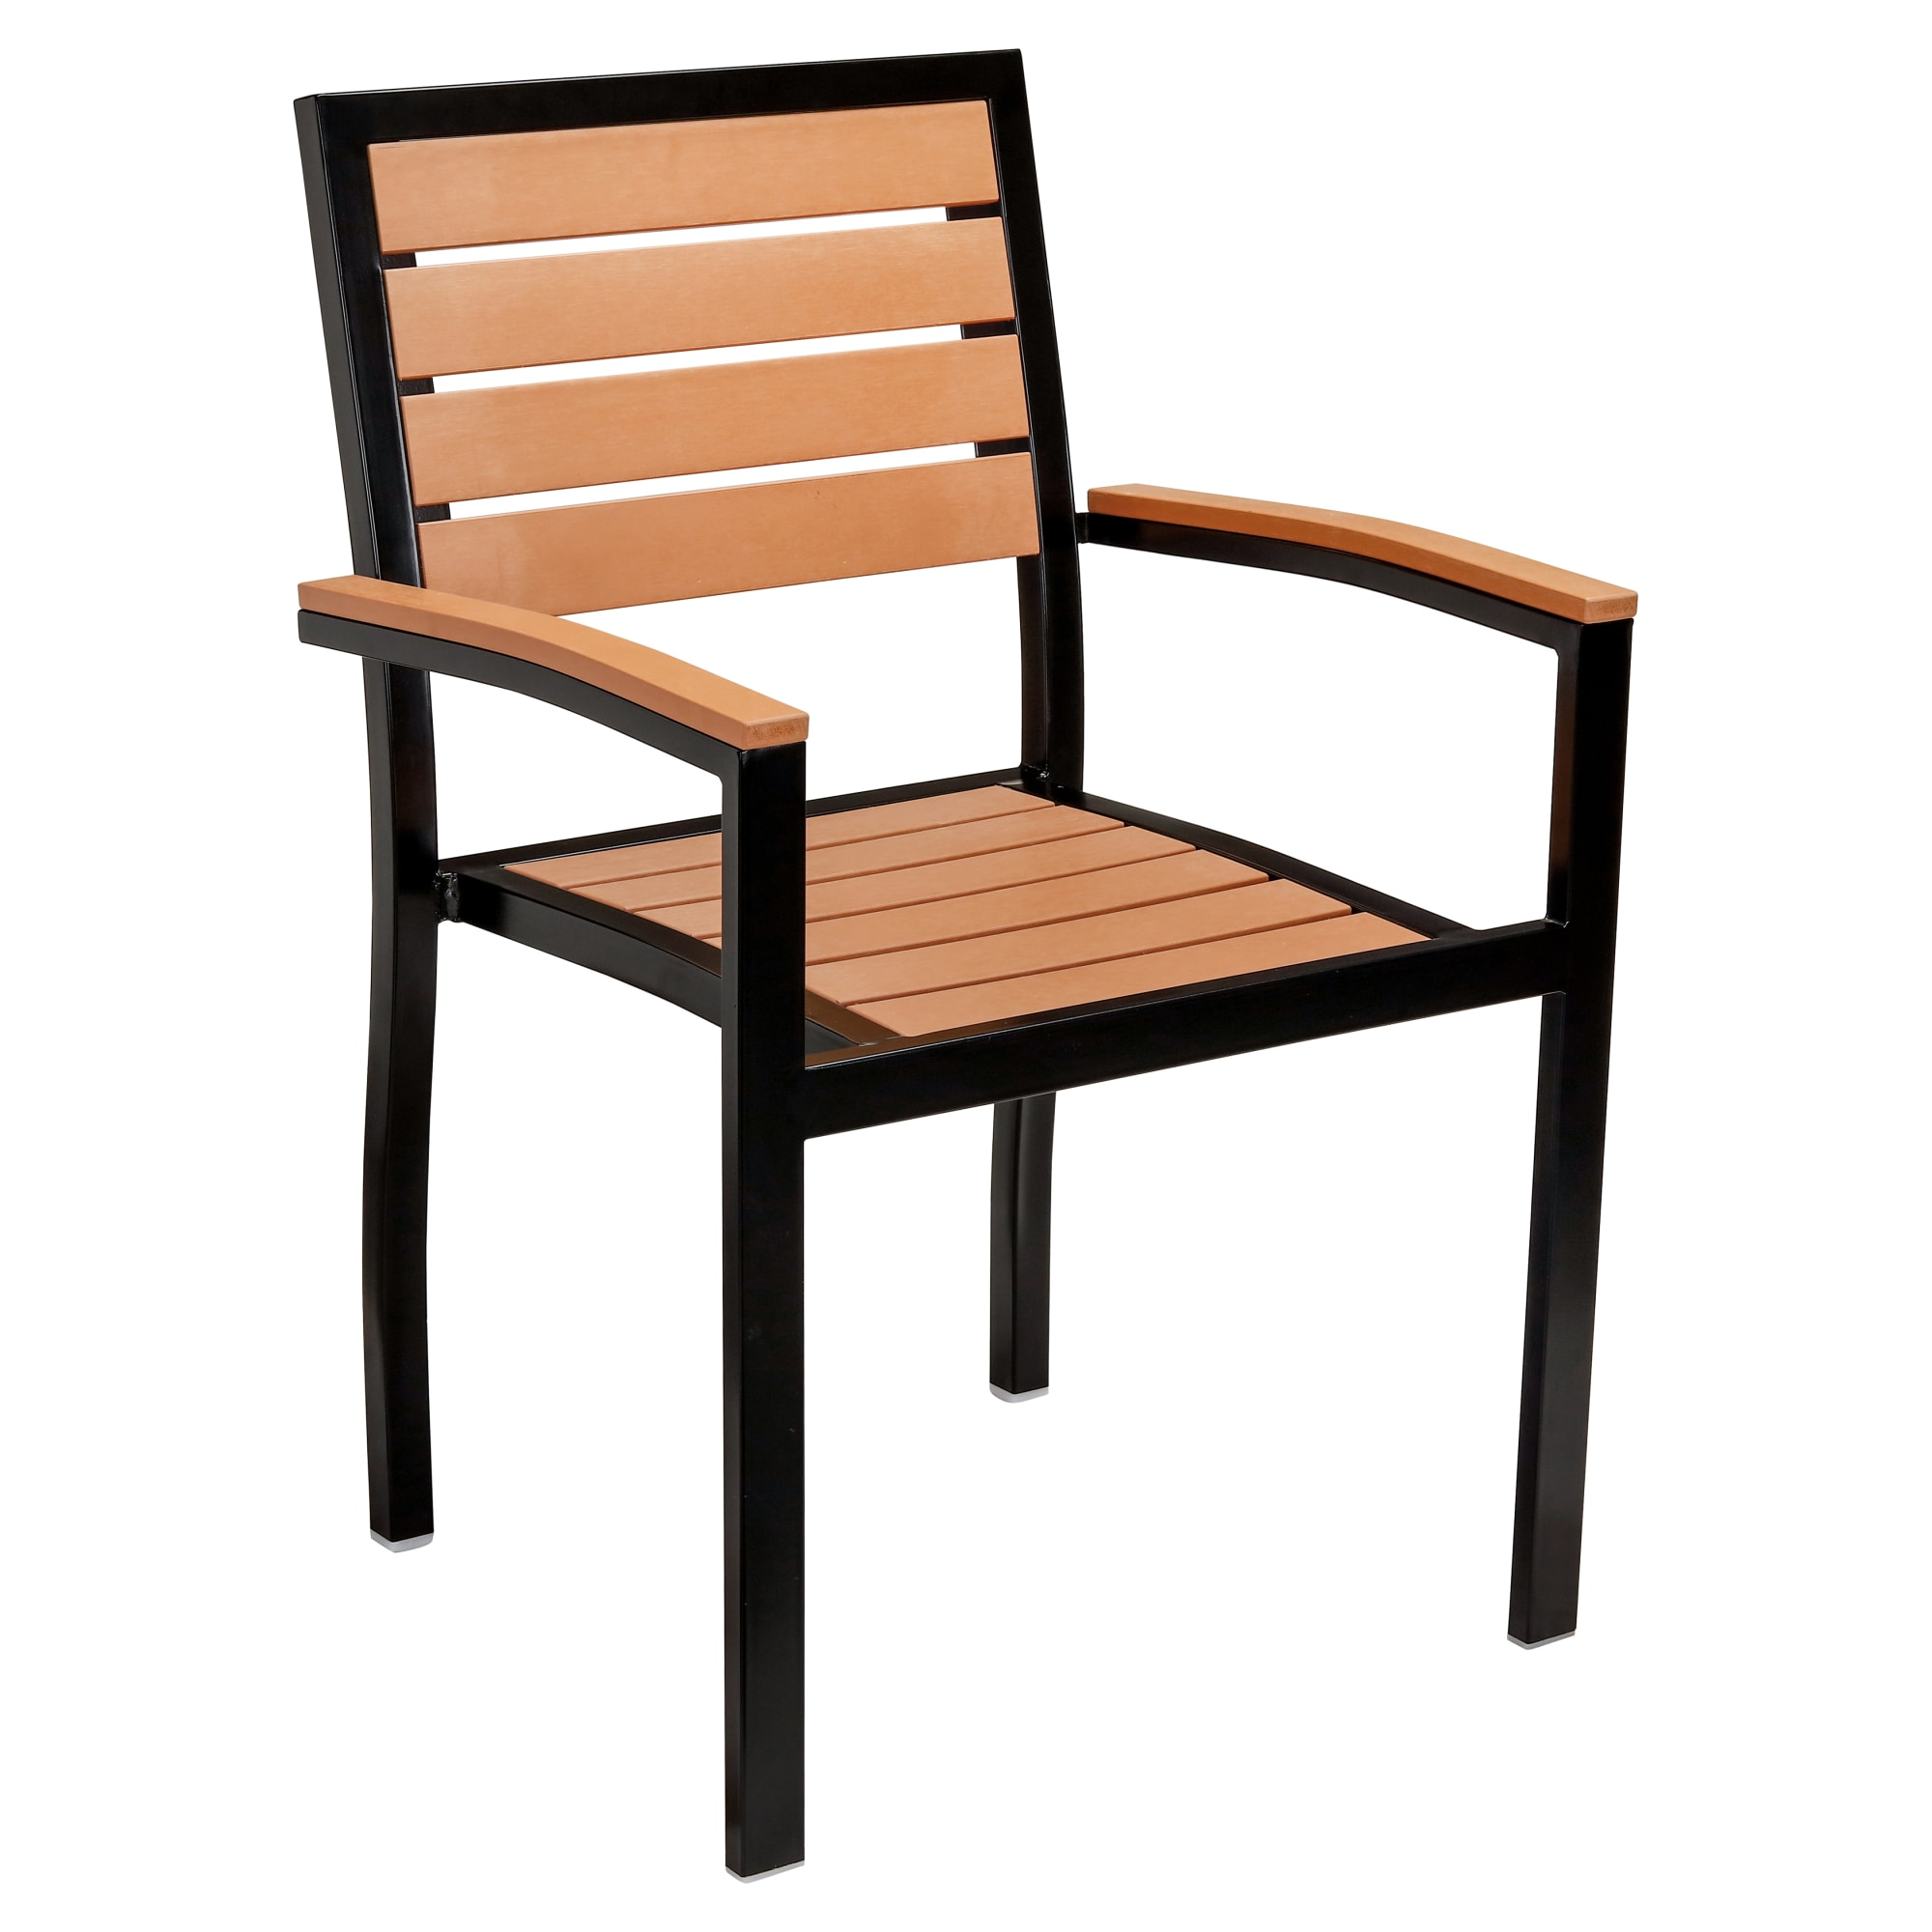 Black Aluminum Plastic Teak Patio Arm Chair with Black Aluminum Plastic Teak Patio Arm Chair